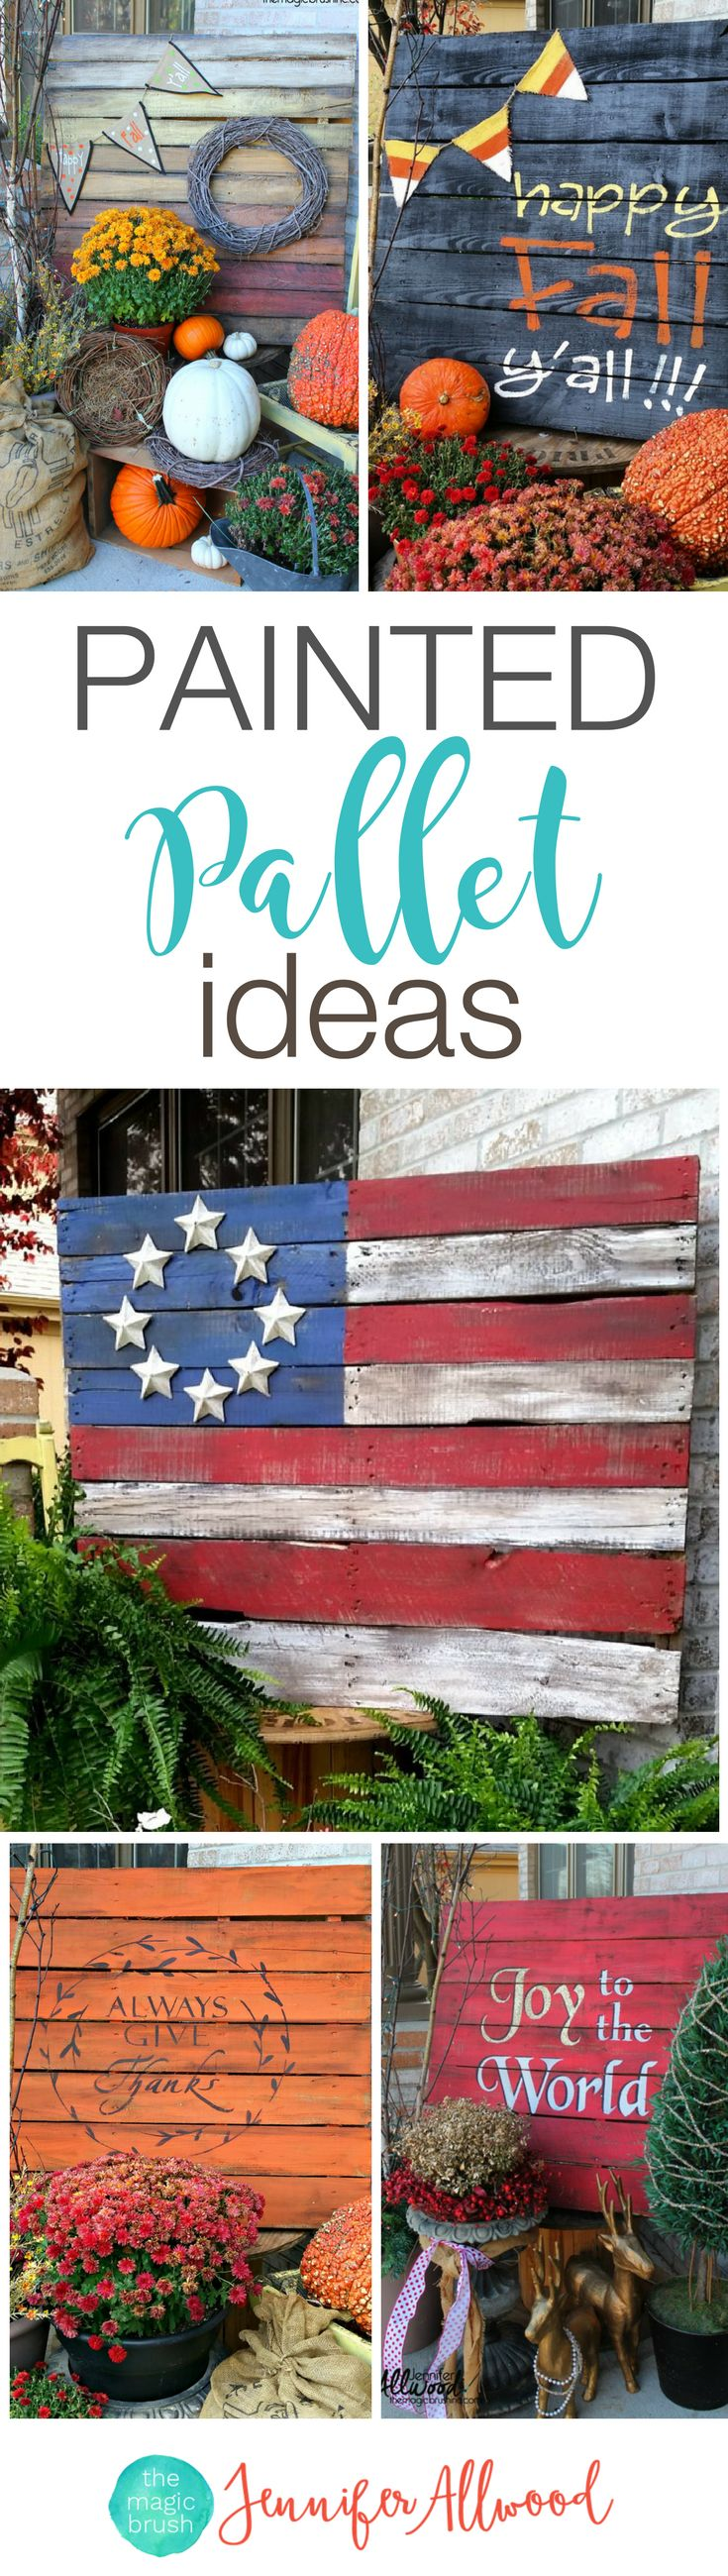 Seasonal Painted Pallet Ideas | The Magic Brush | Here's an easy DIY project for holiday decor for your porch. Plan a night with girls to repurpose pallets as painted holiday decor